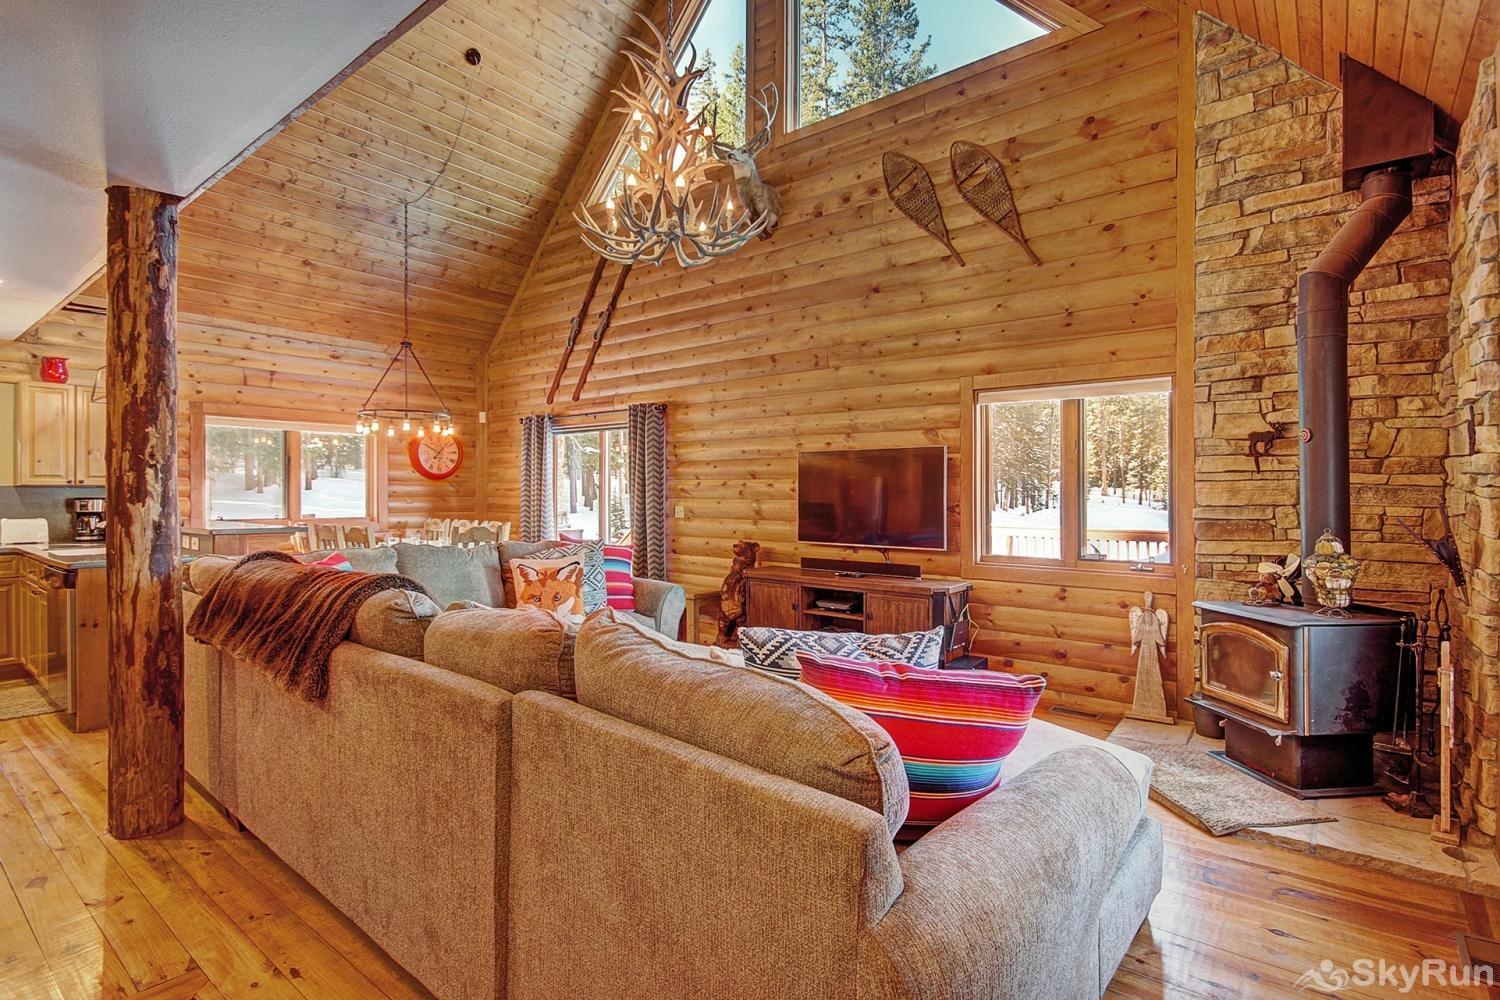 The Sly Fox Hideaway Large living area with lofted ceilings